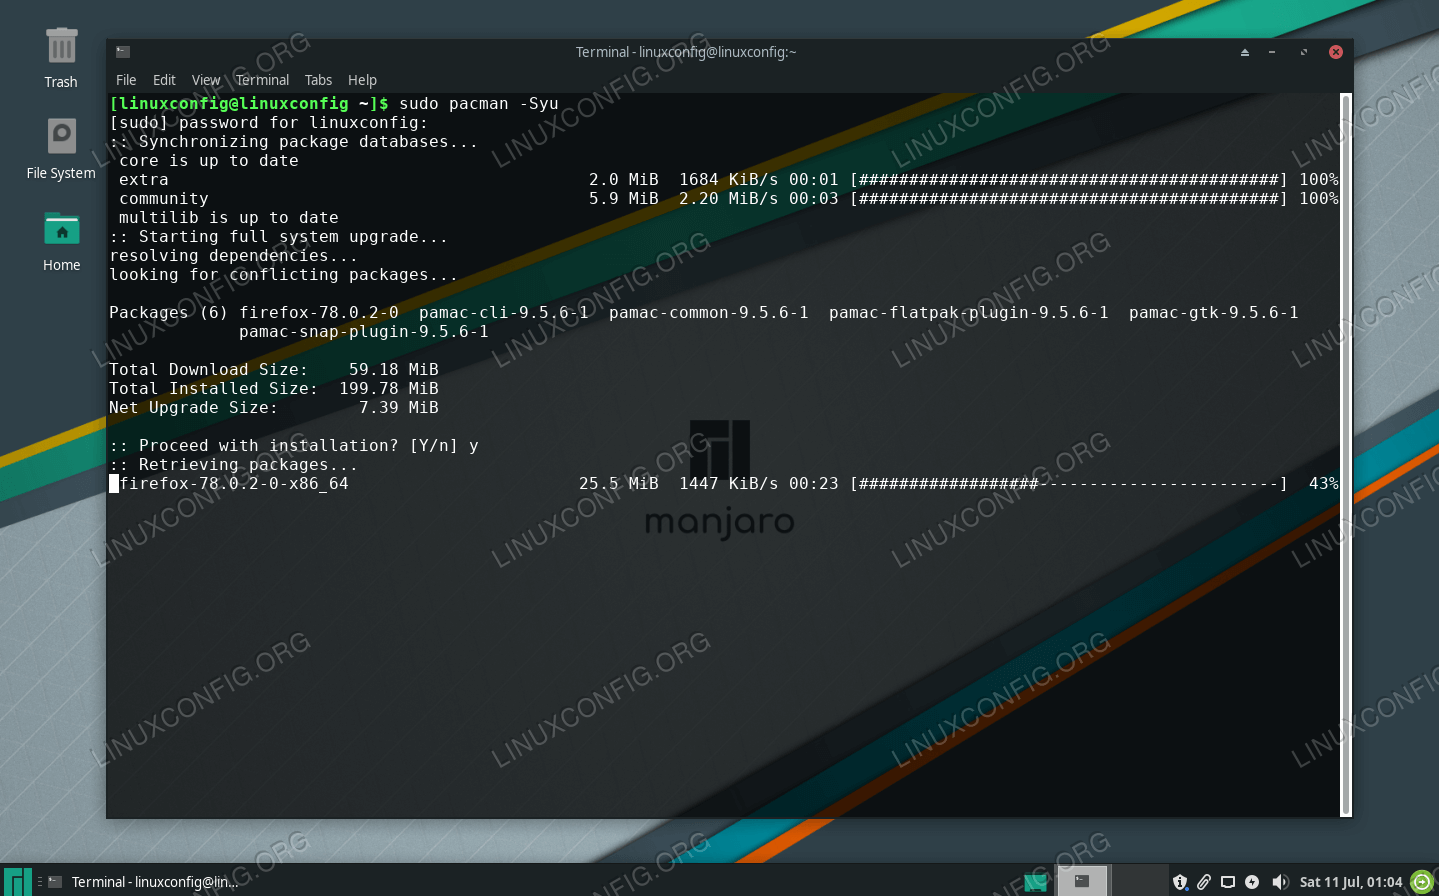 Updating Manjaro via the command line